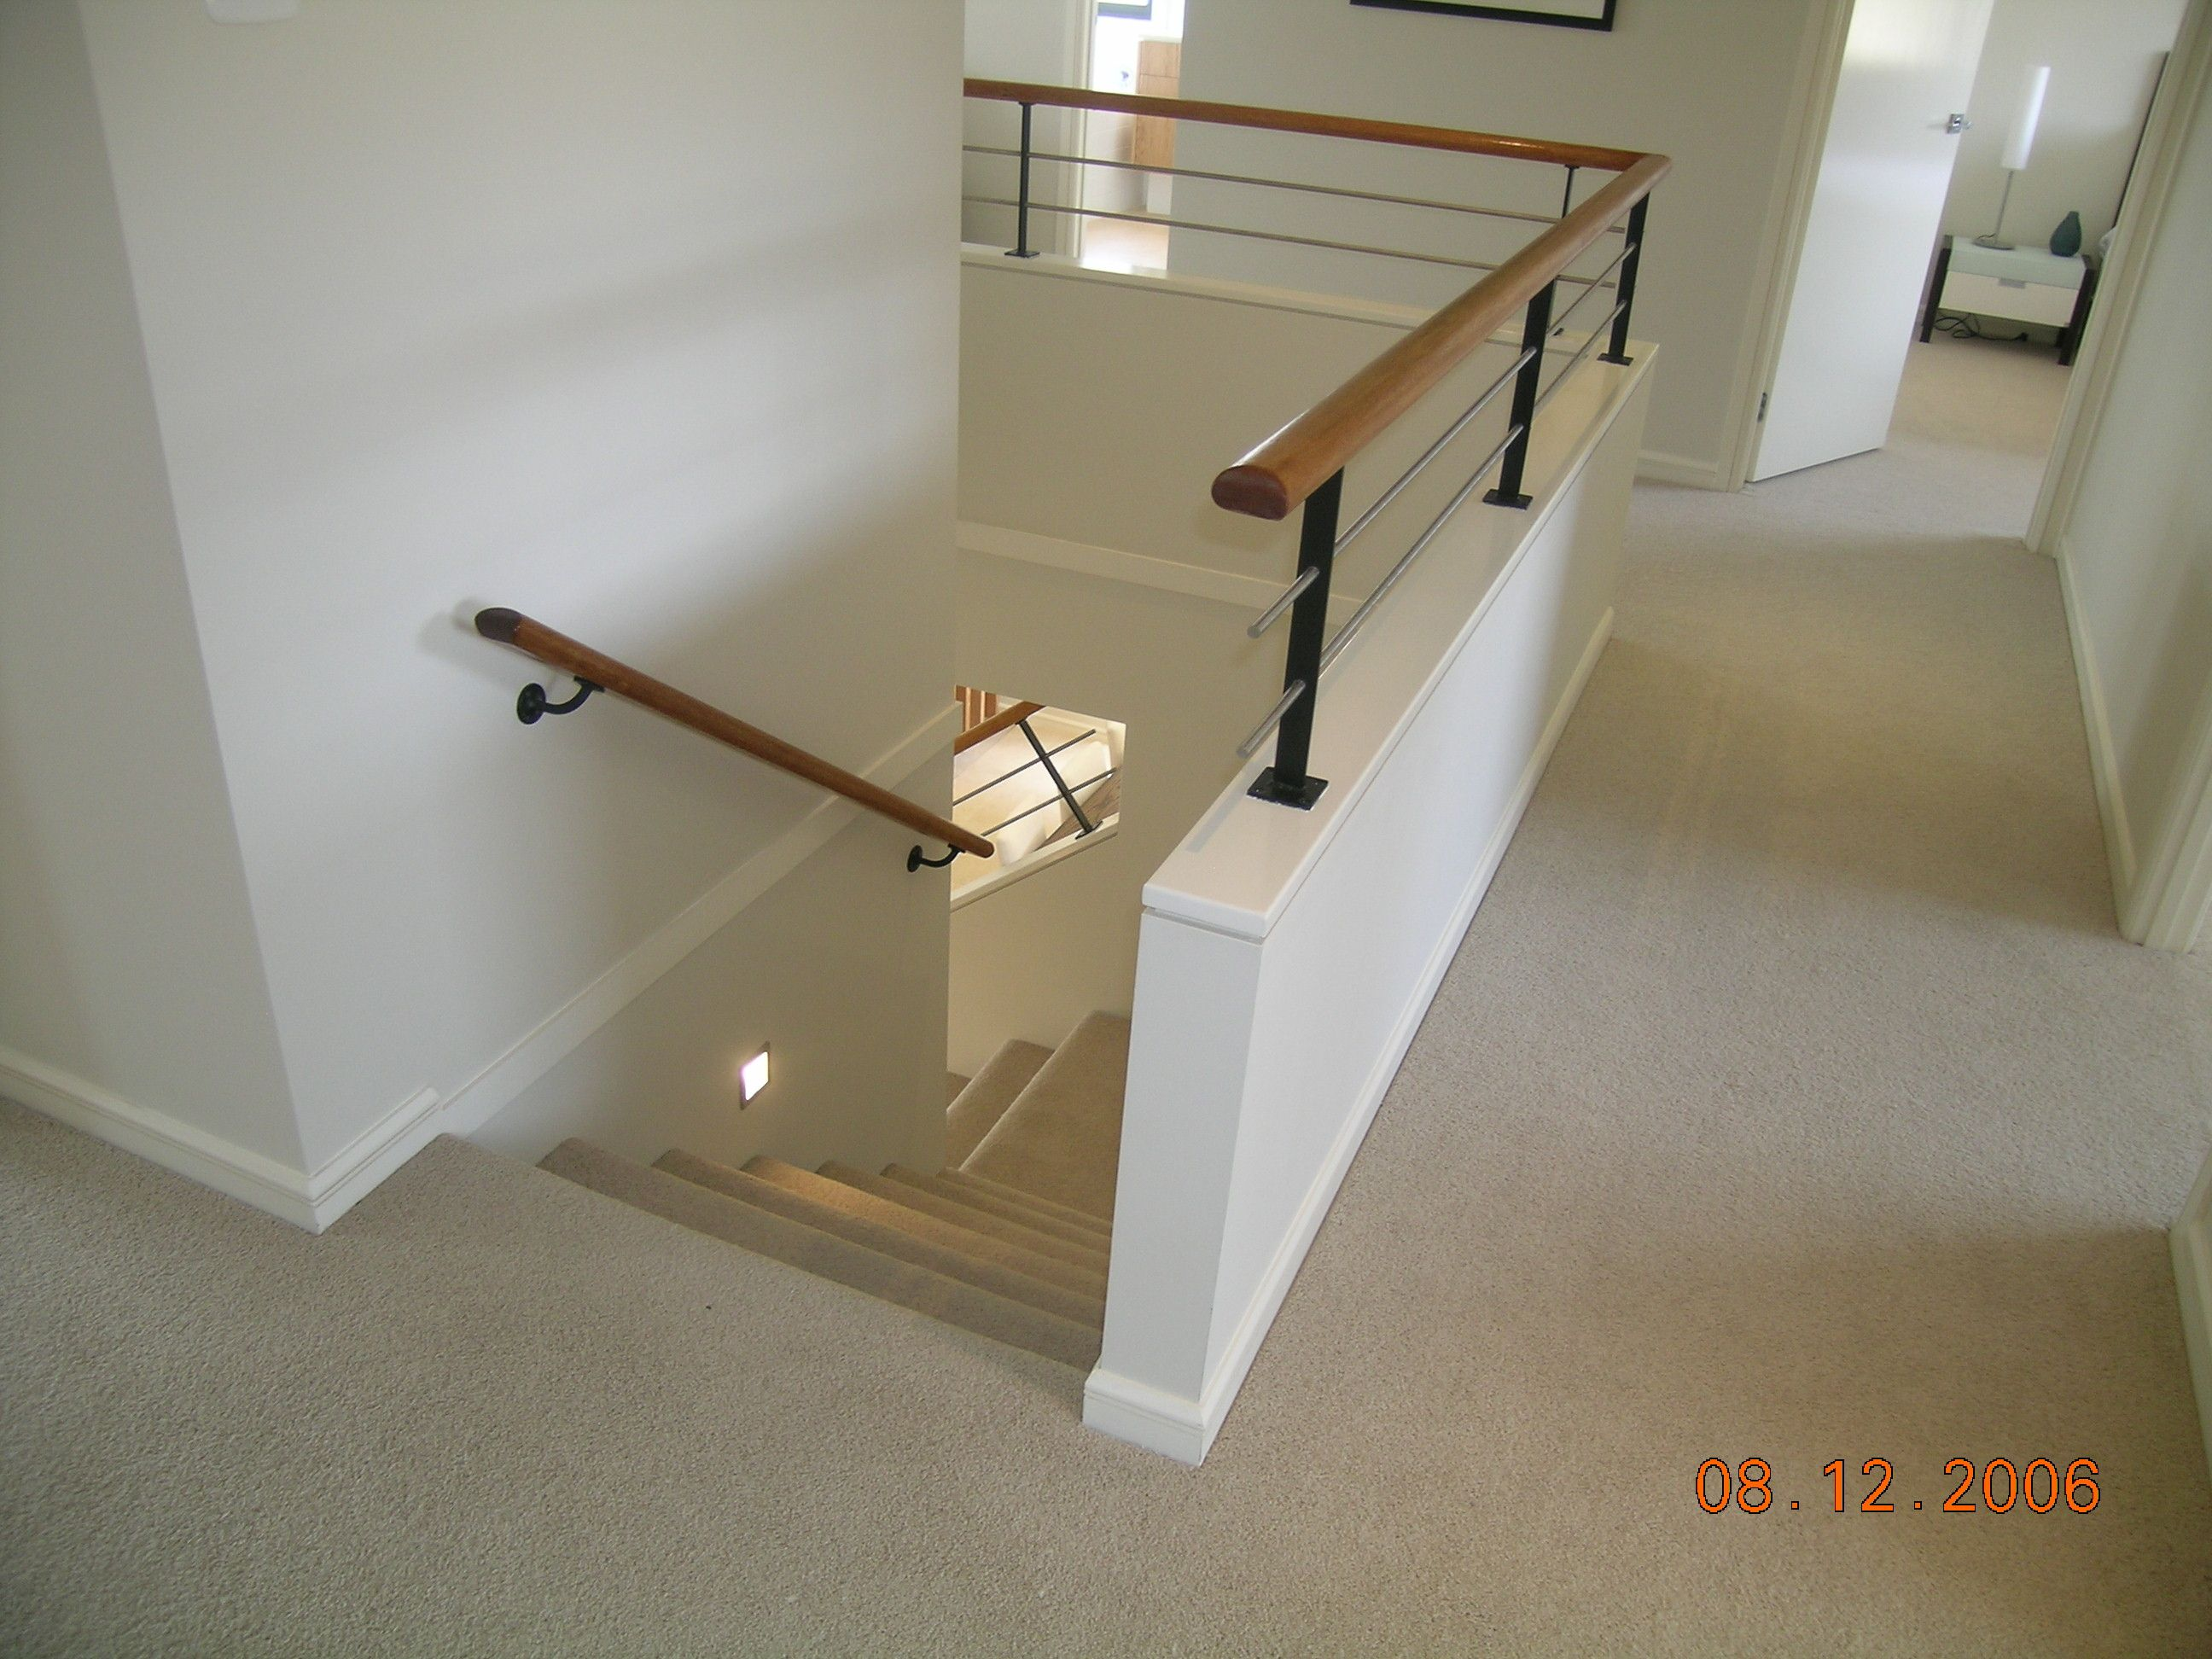 half wall, timber handrail stainless steel rails and black powder